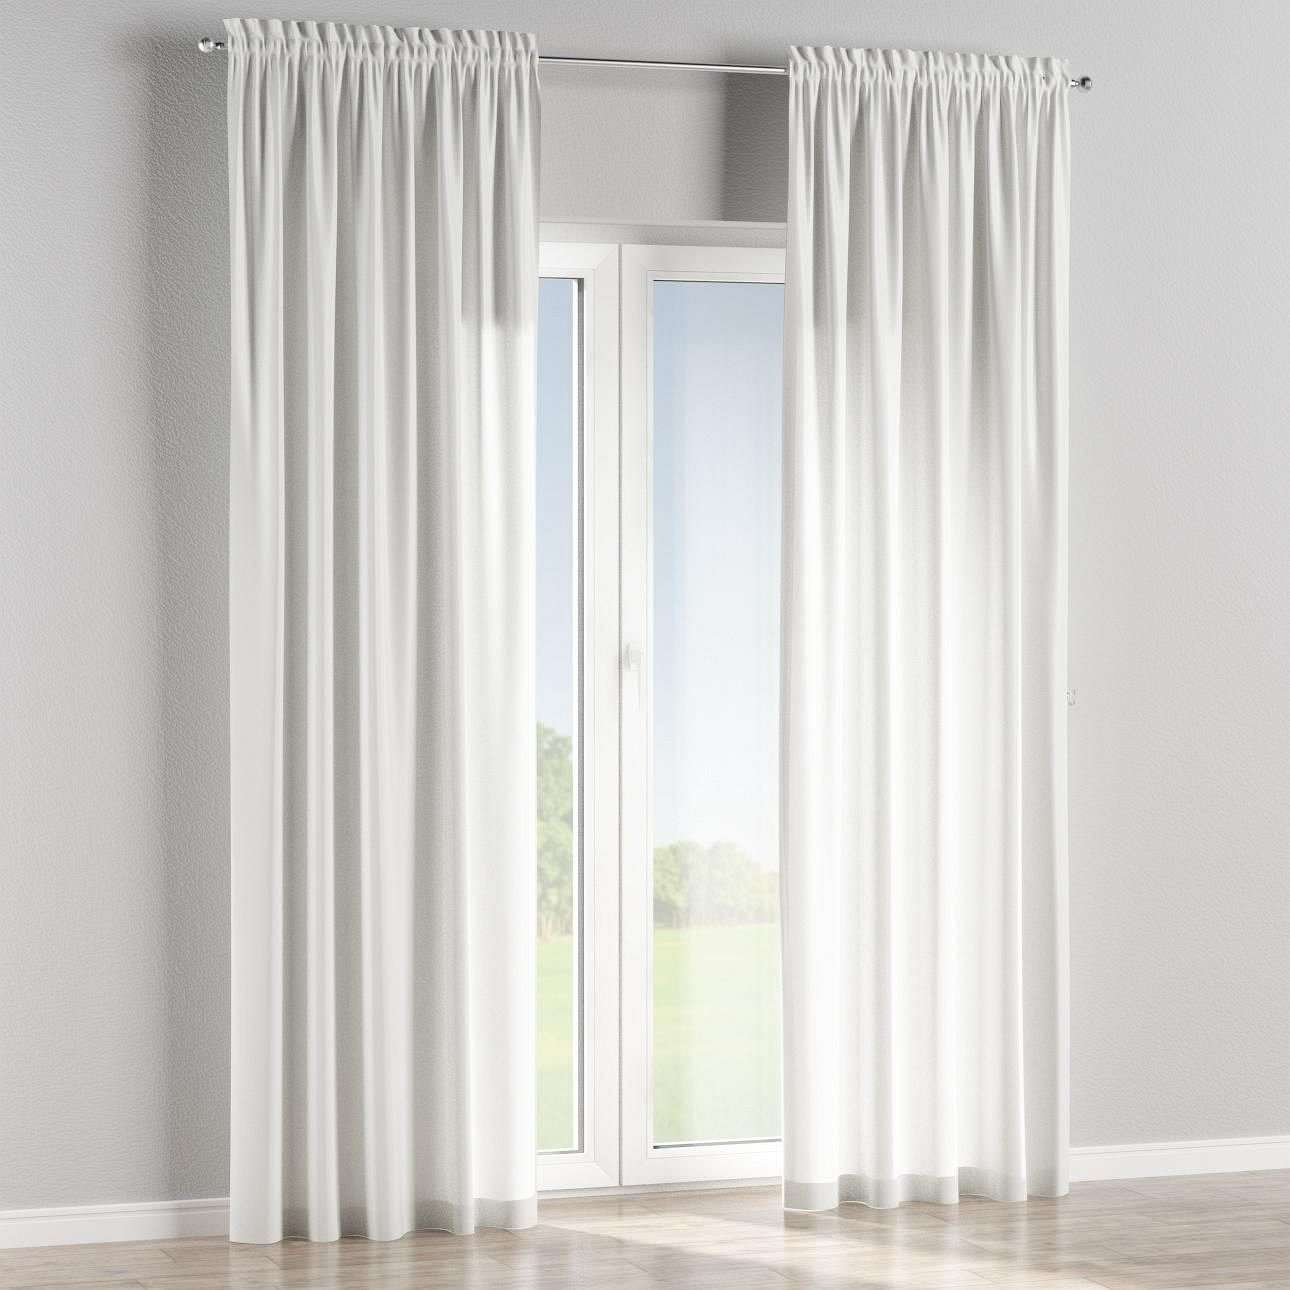 Slot and frill curtains in collection SALE, fabric: 104-02